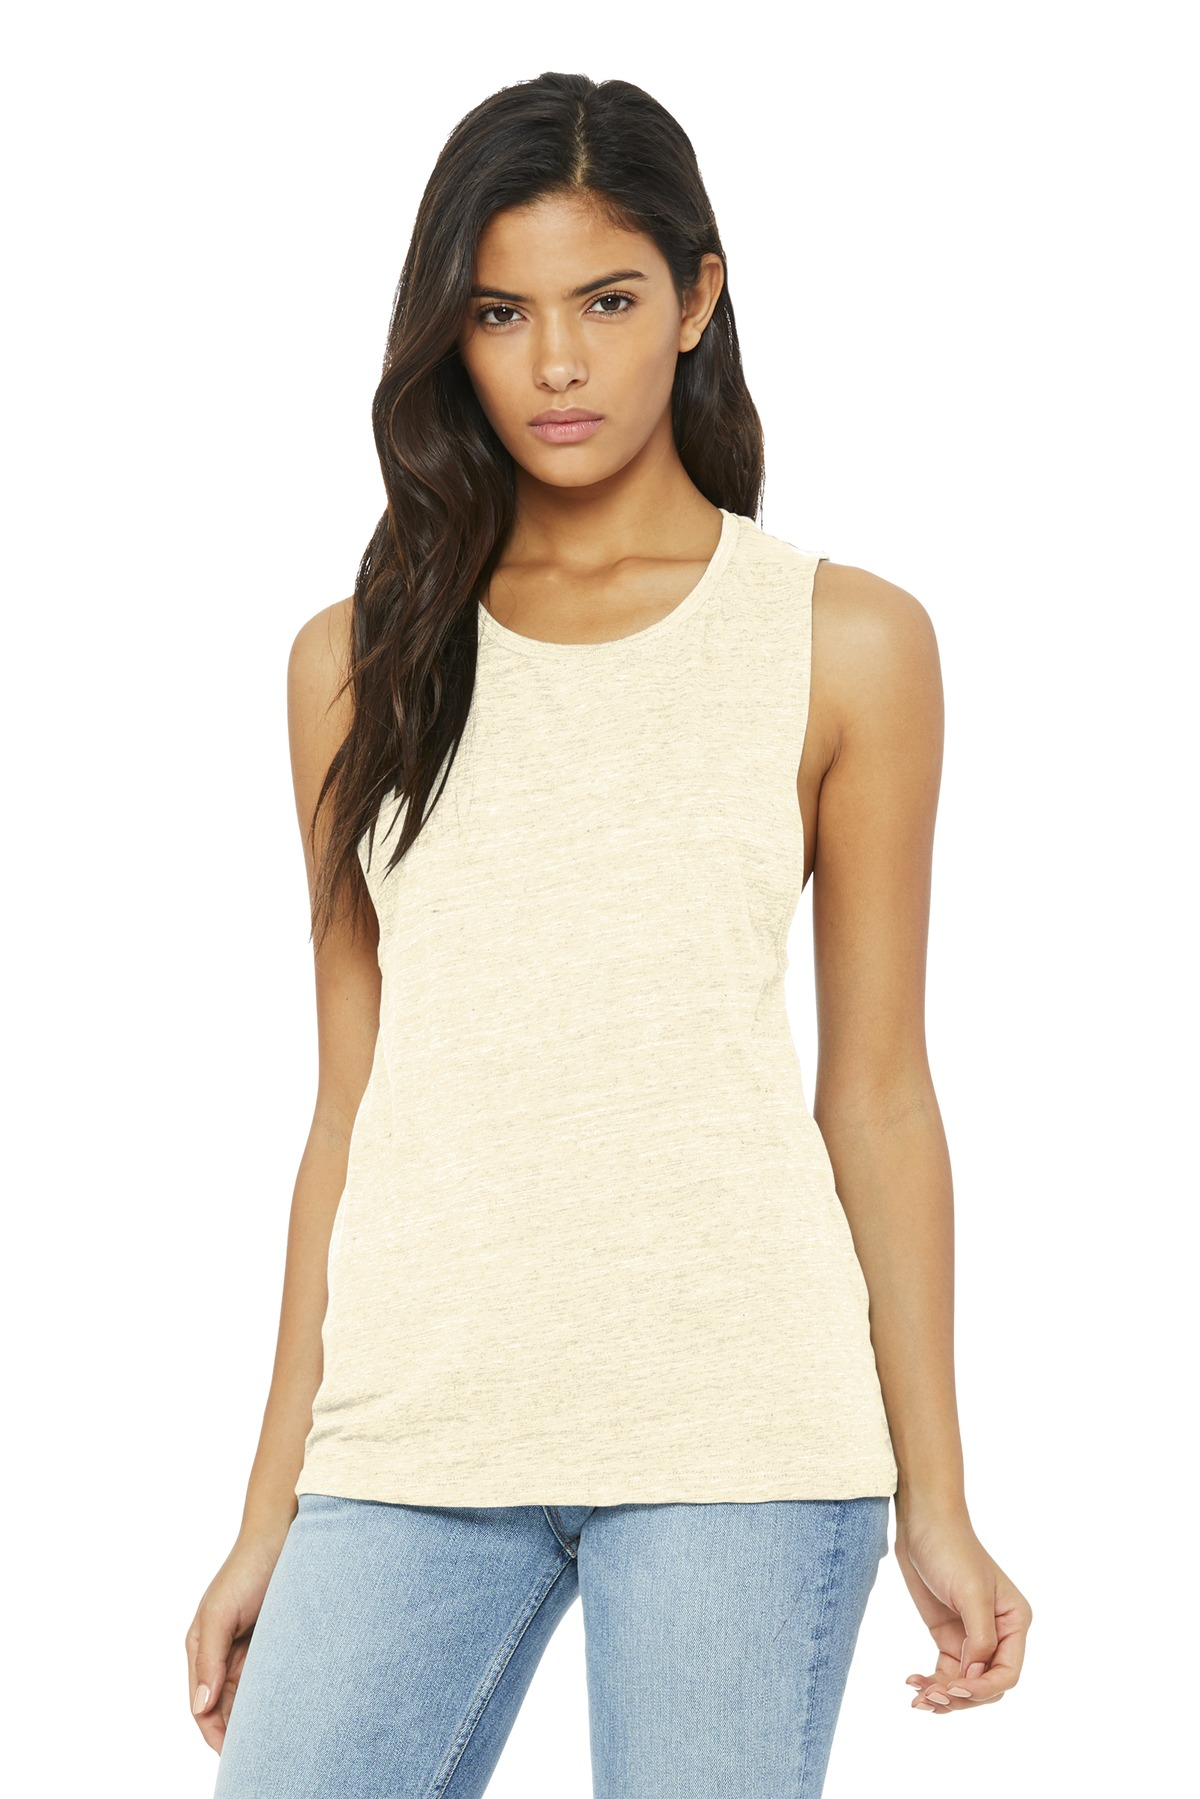 BELLA+CANVAS  ®  Women's Flowy Scoop Muscle Tank. BC8803 - Natural Slub